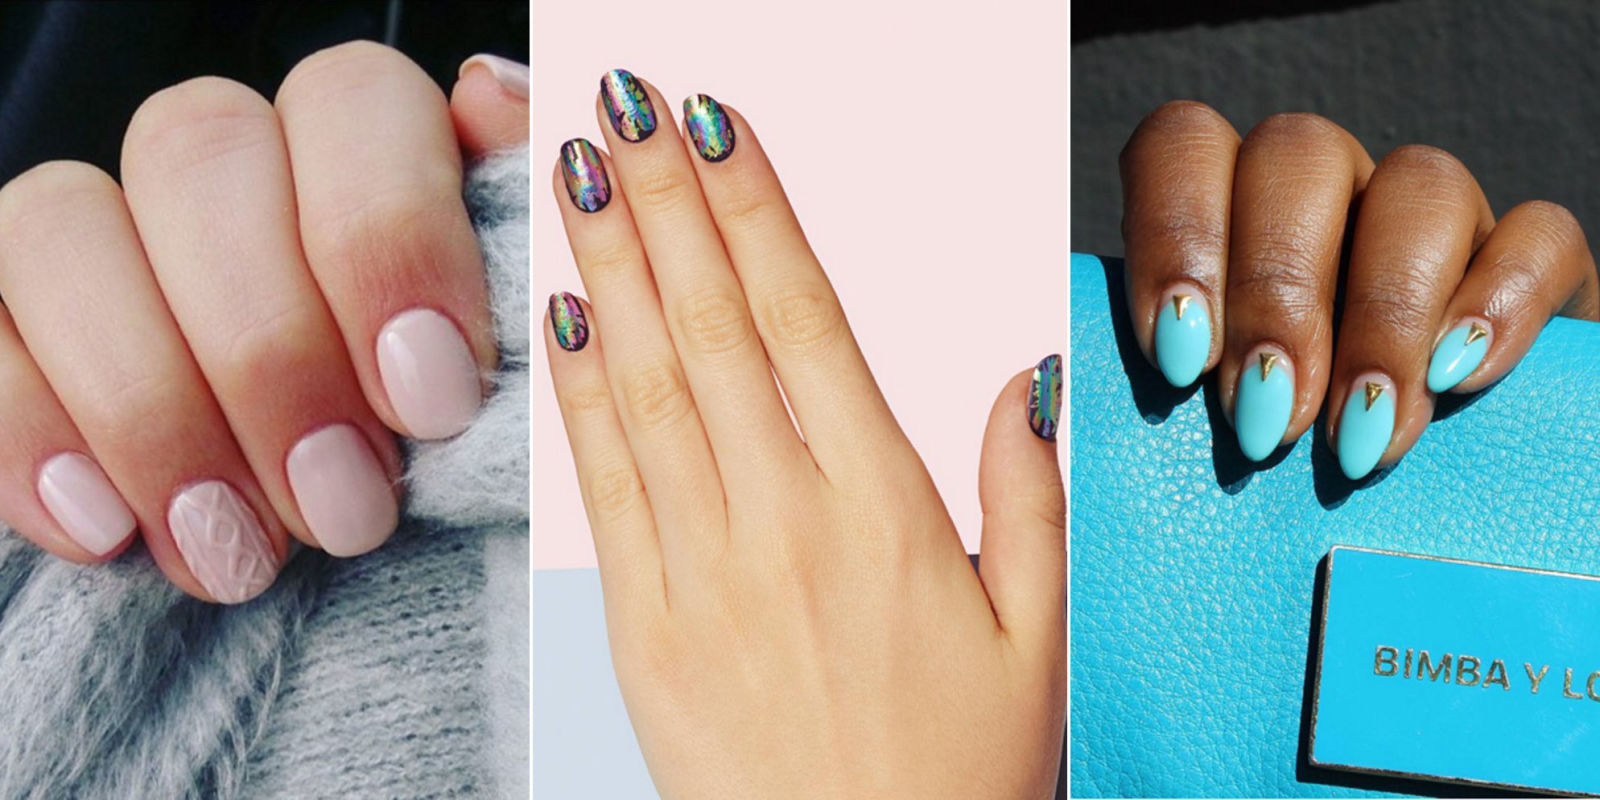 Nail Art Ideas edgy nail art : The Best Nail Art Trends for 2016 — Nail Color and Design Trends